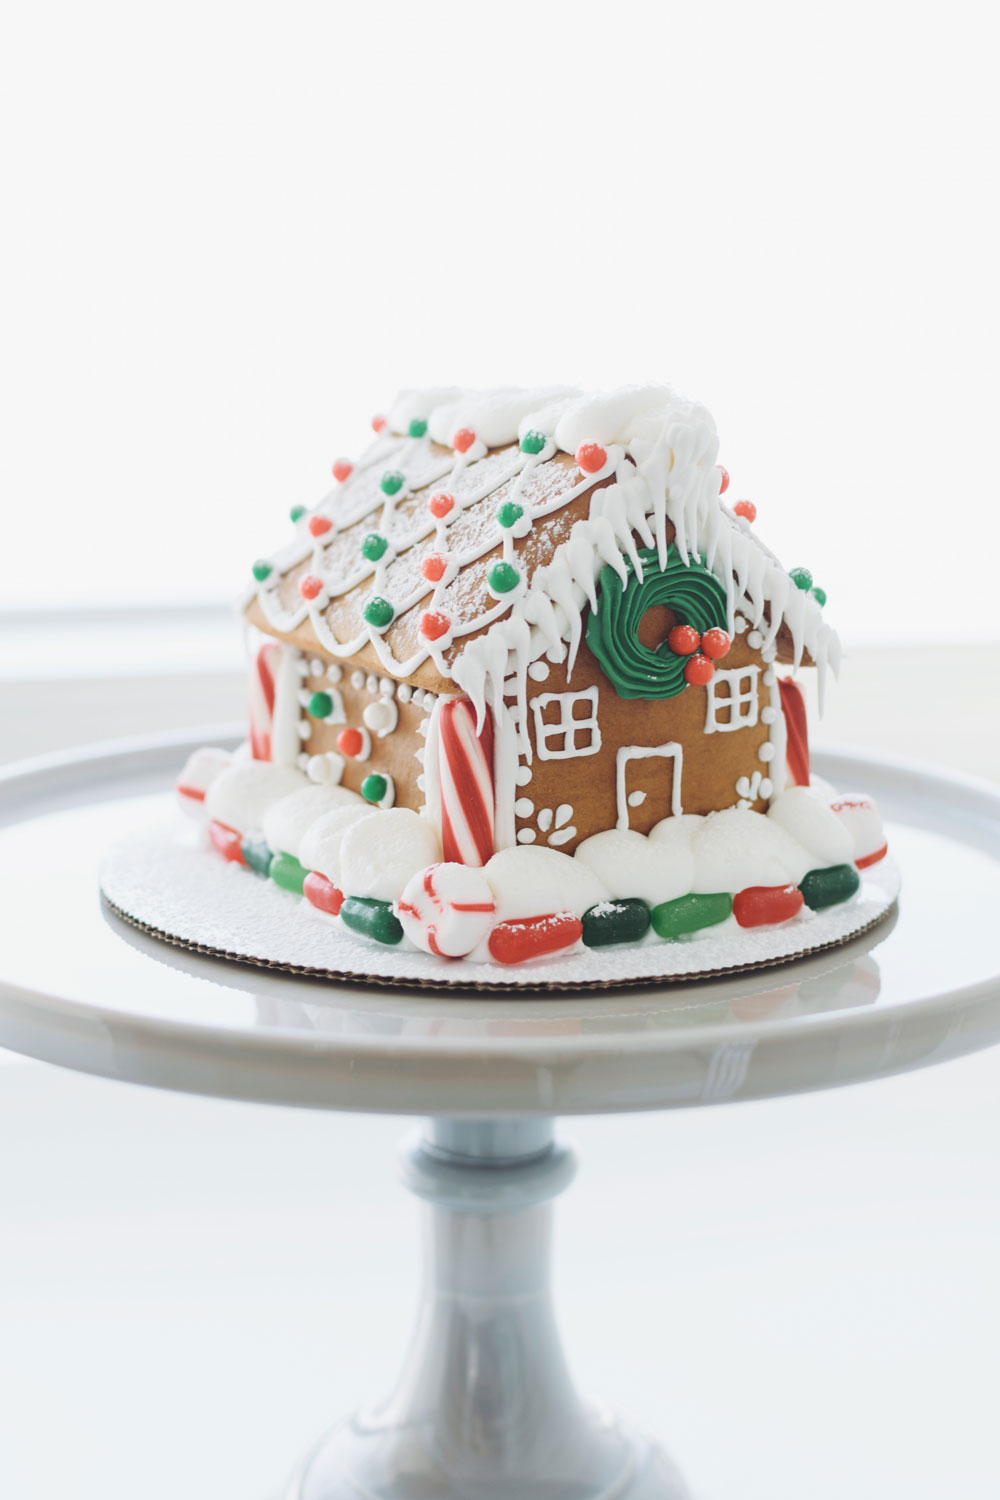 CANDY GINGERBREAD HOUSE - classic gingerbread decorated with icing, candy, and powdered sugarsmall (shown) $45 / medium $65